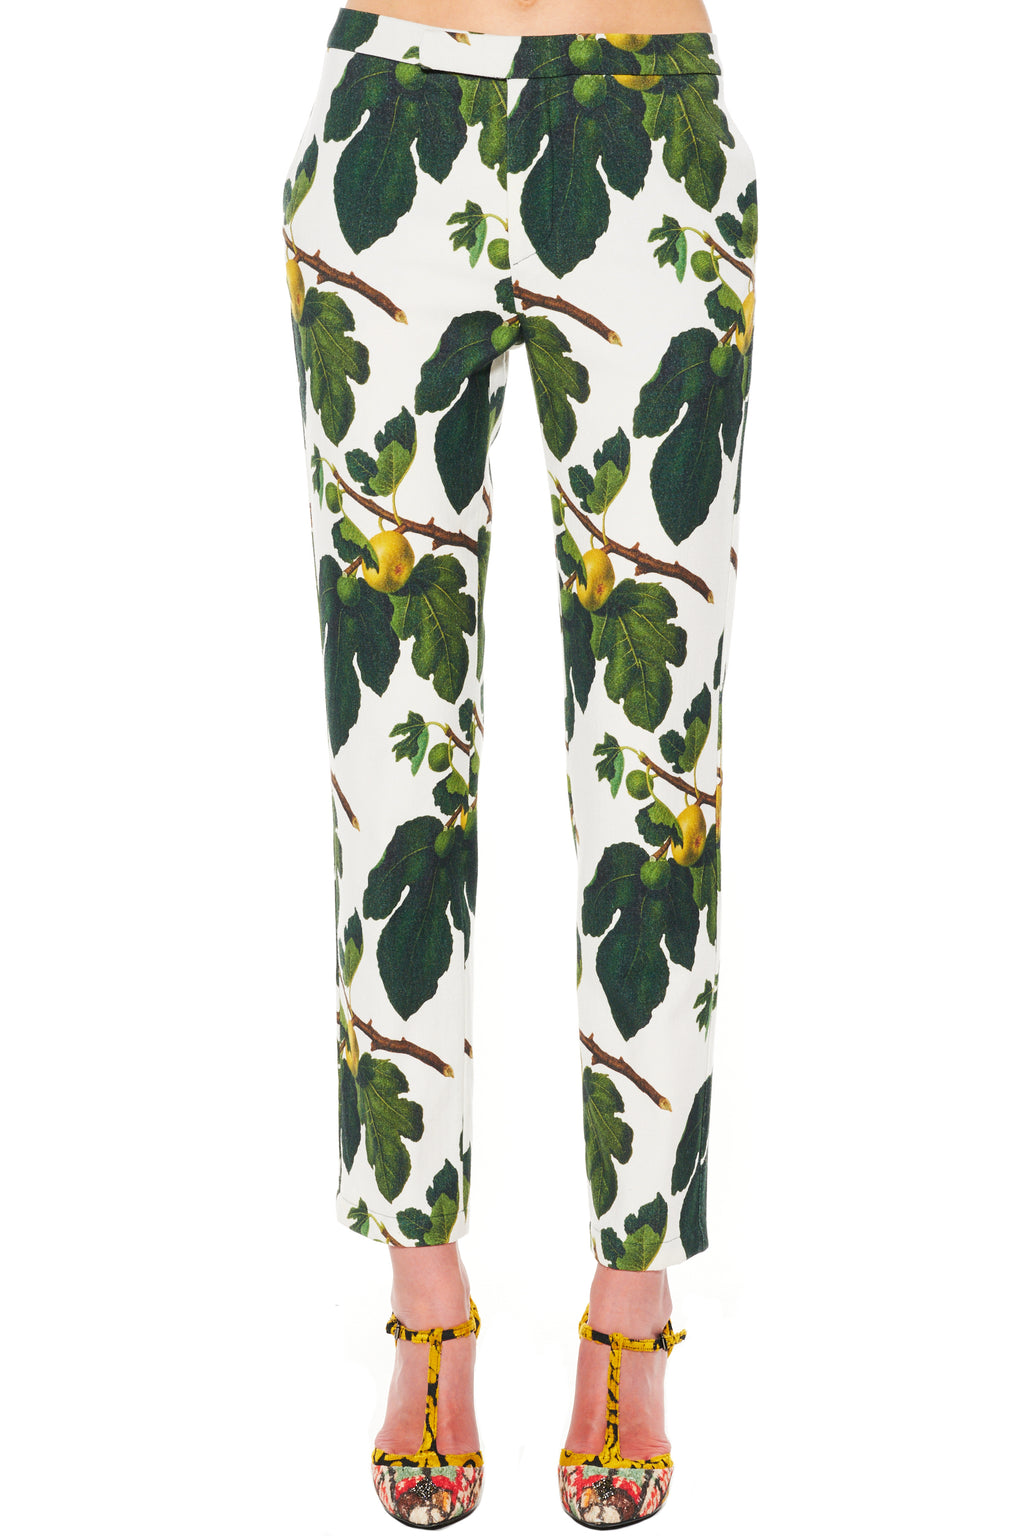 'FIGGY PUDDING' PANTS - Web Exclusives - Libertine